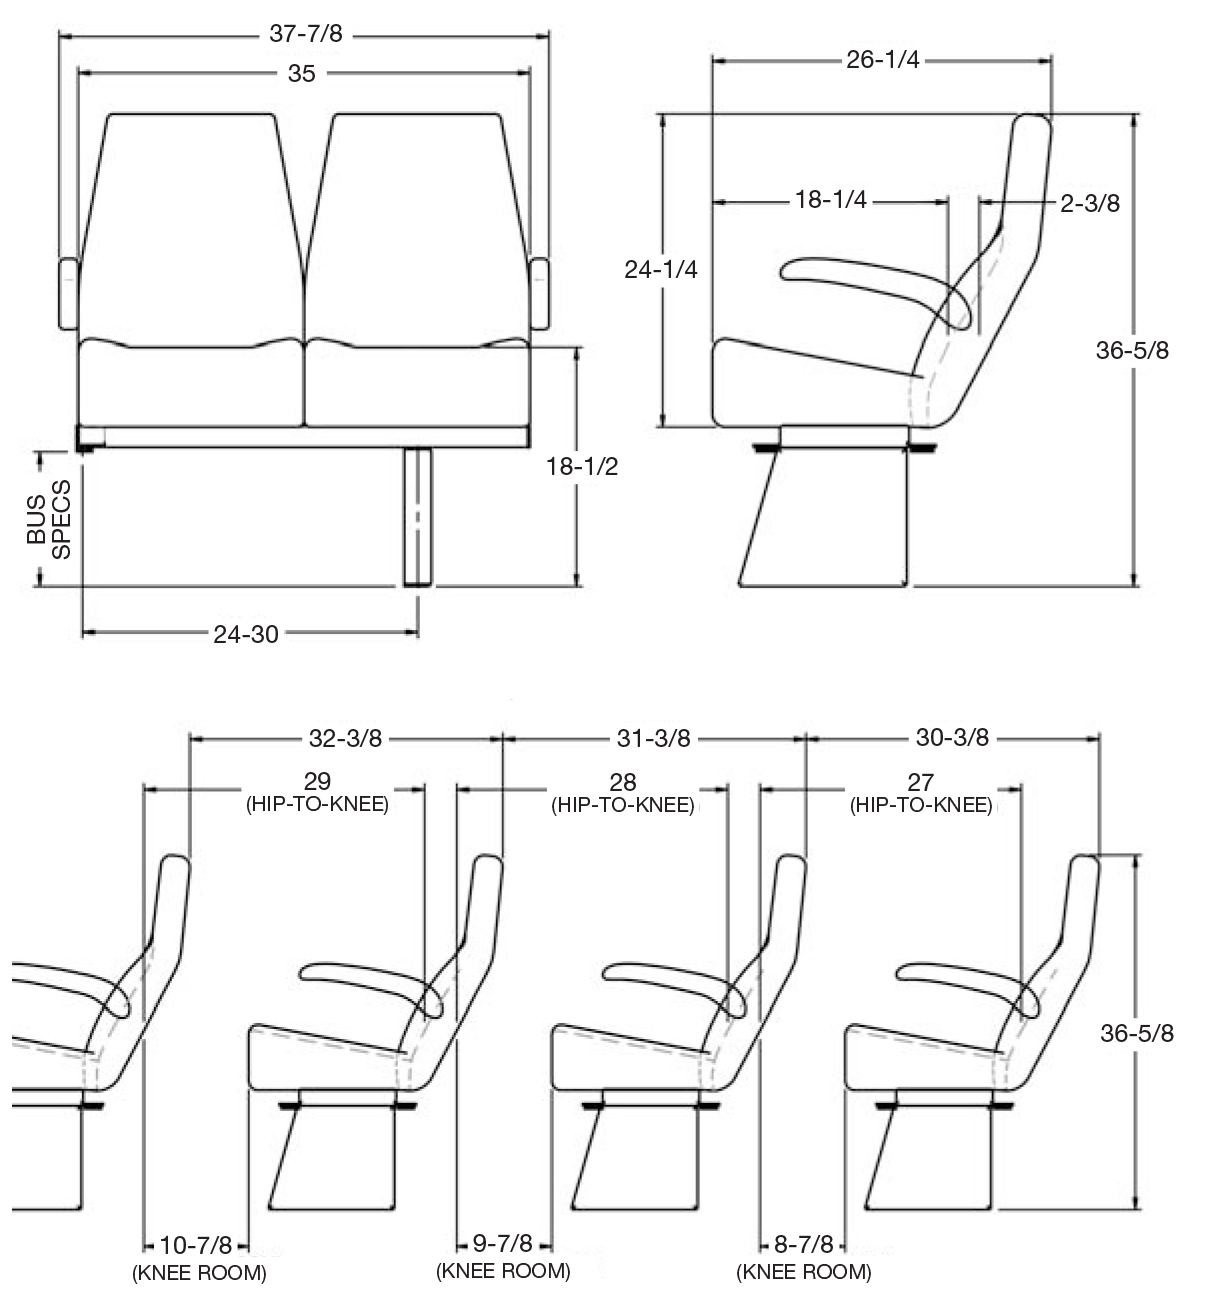 Feather Weight Mid-Hi Seat